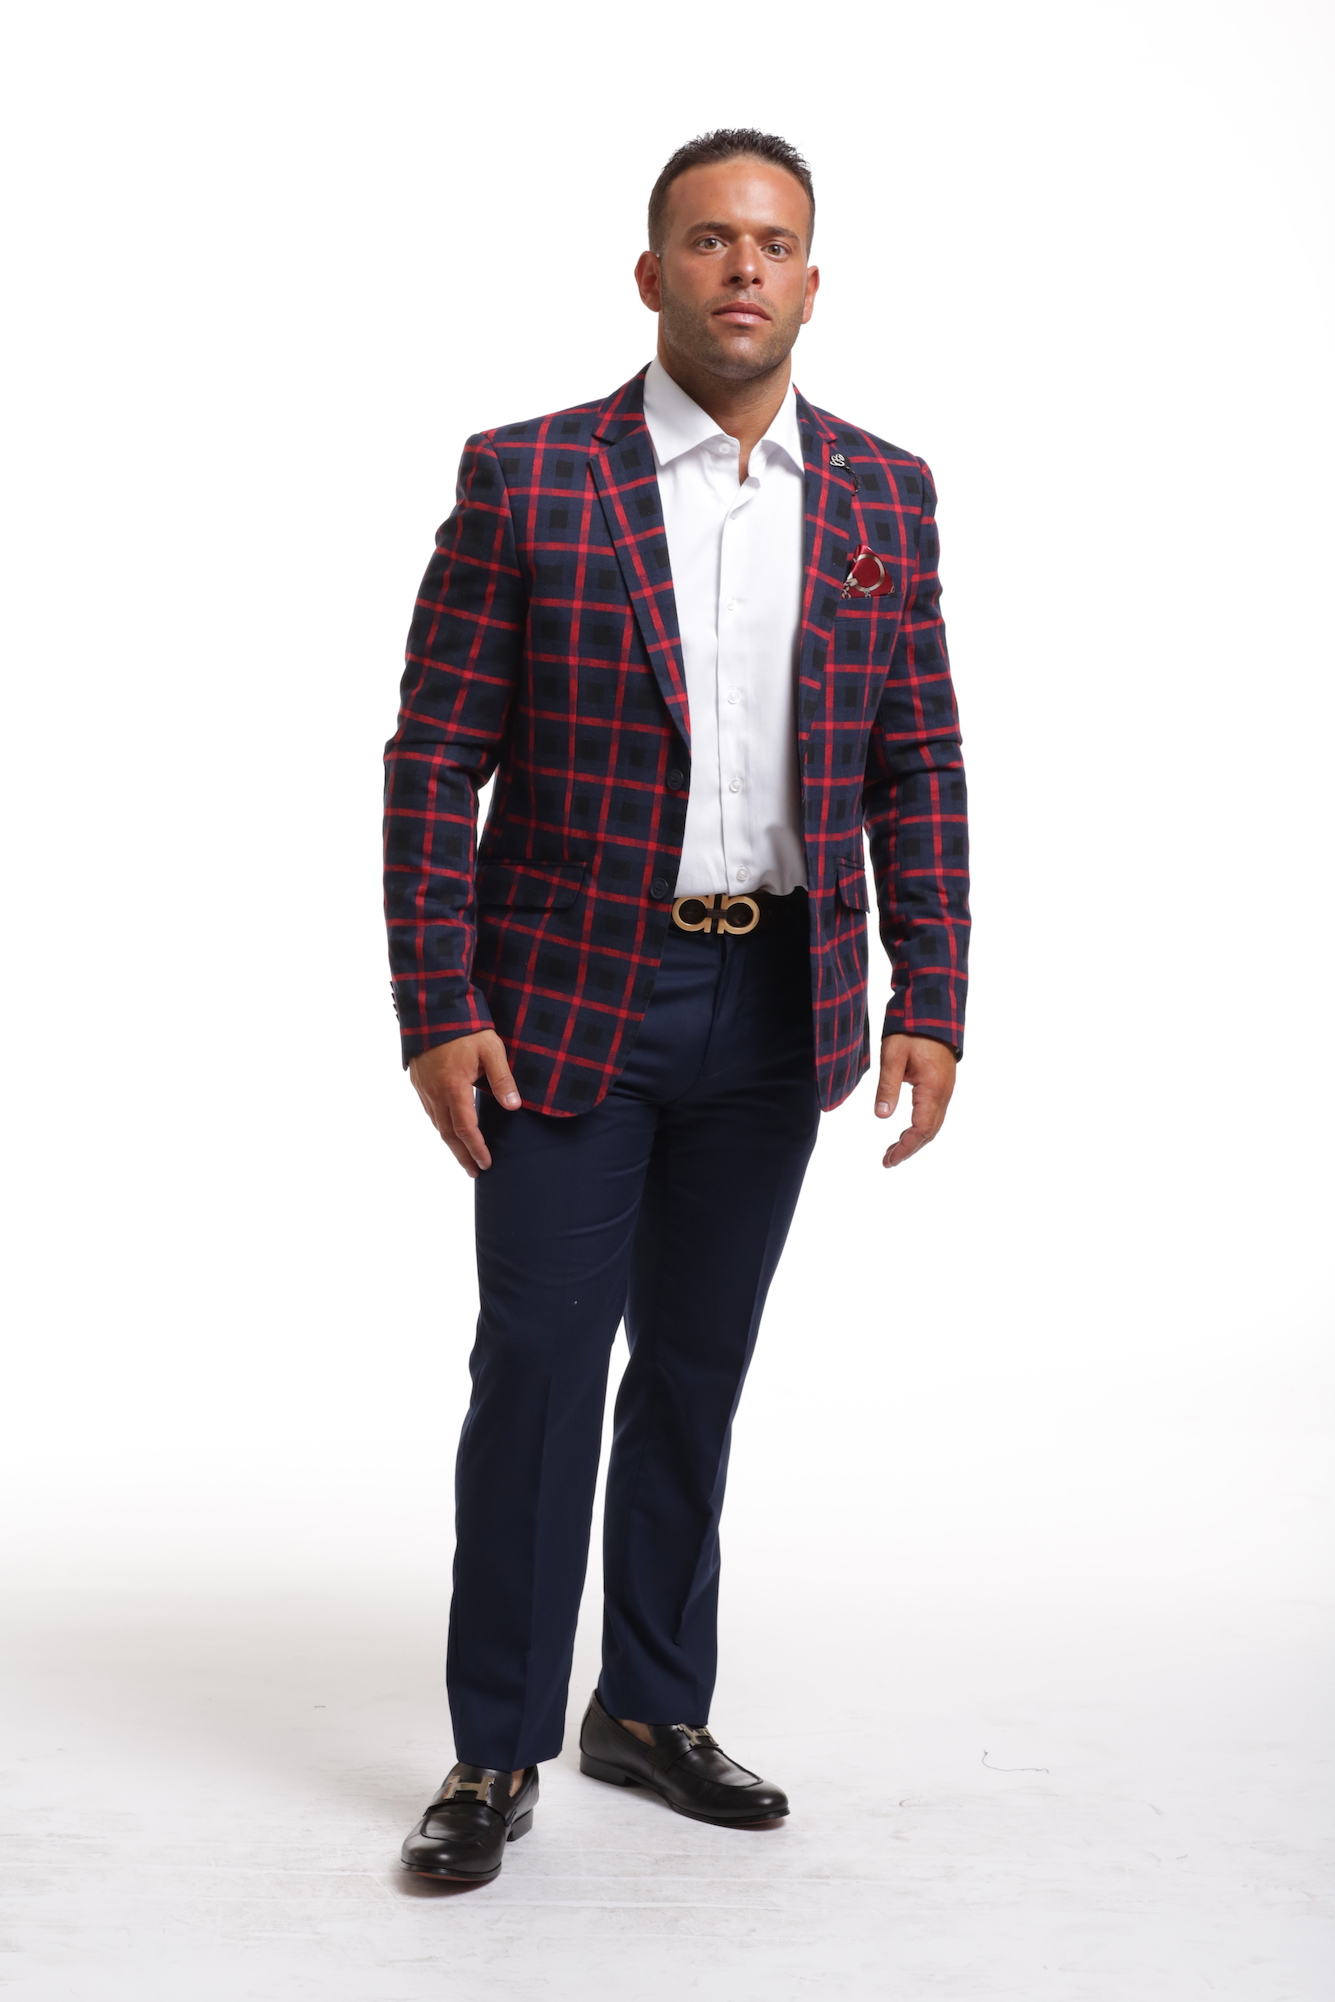 Elie Balleh Wild Red Checkered Men's Blazers - Sports Coat Jacket